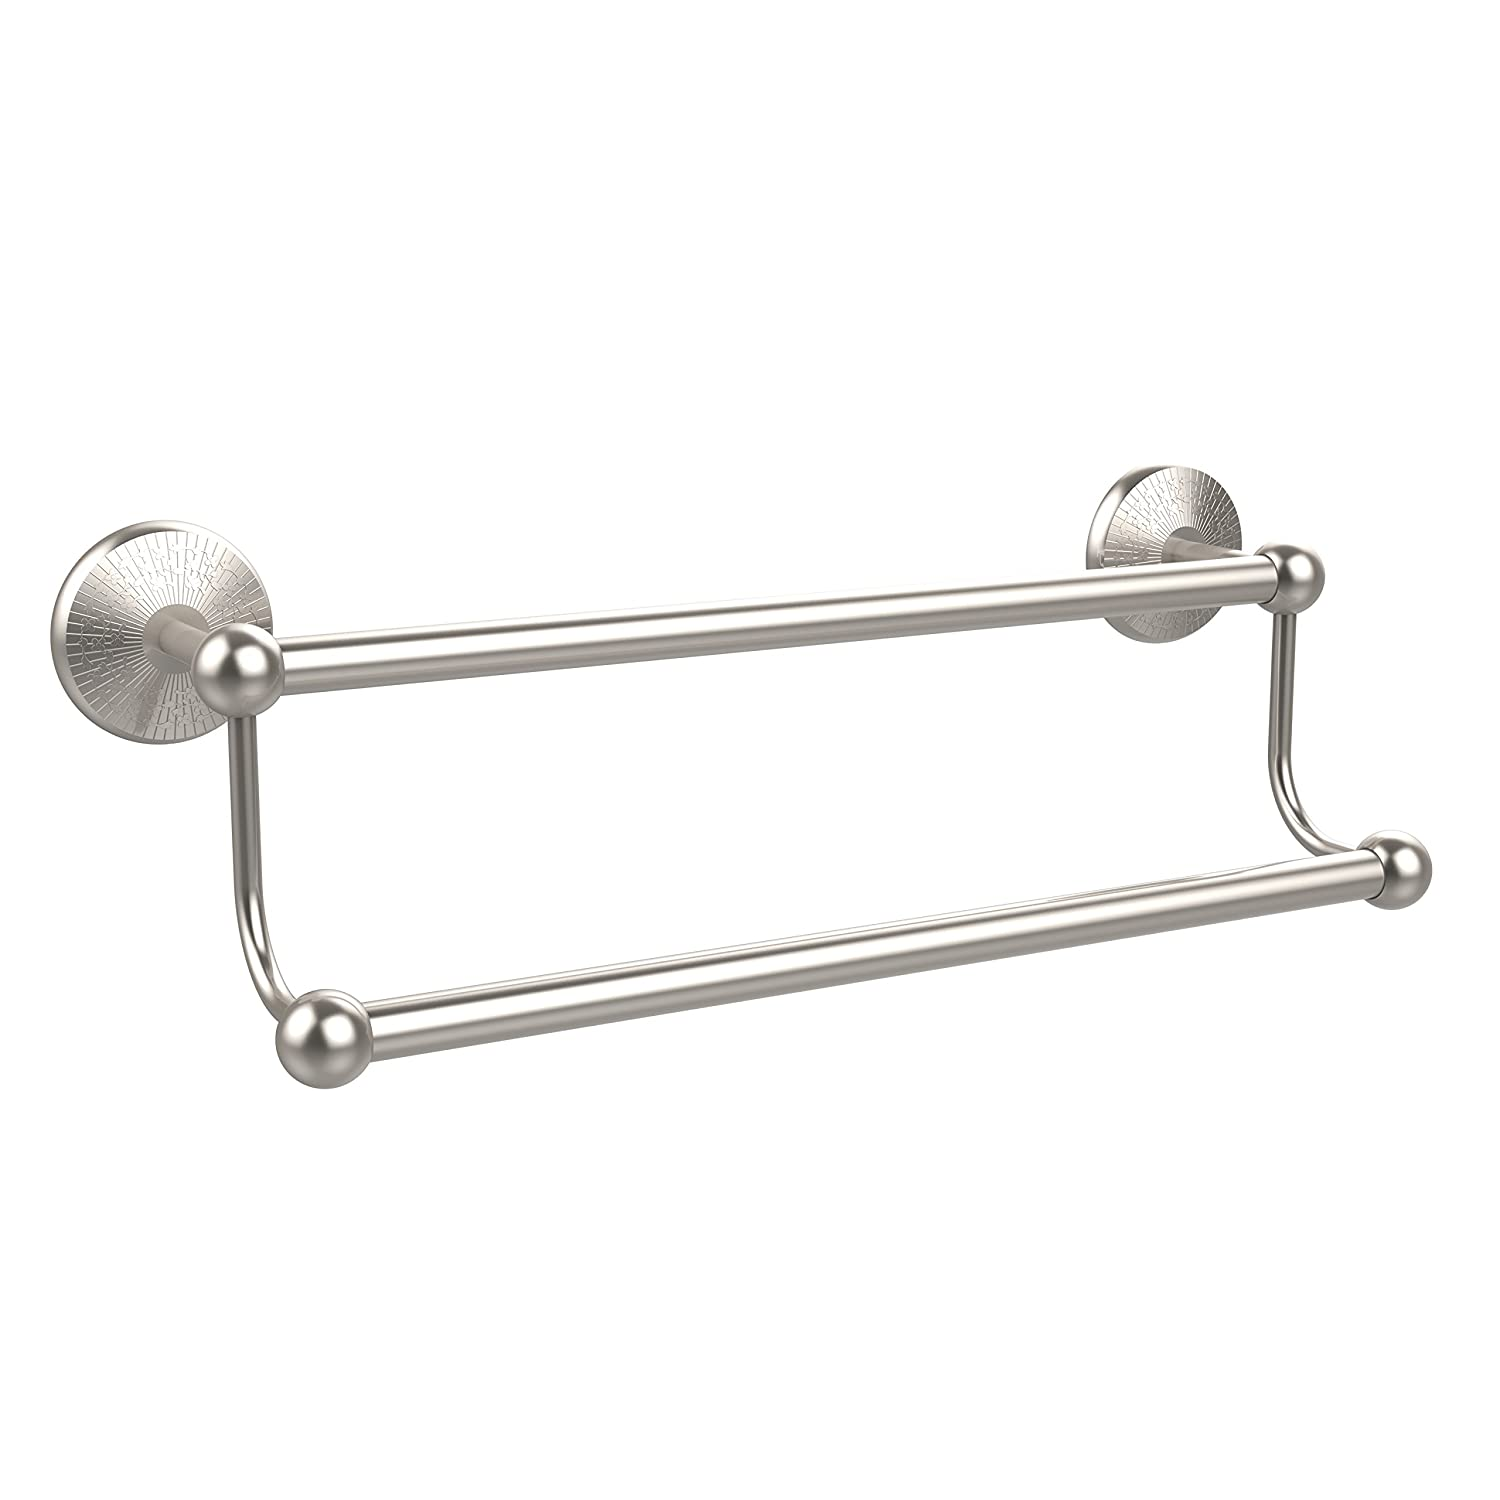 Allied Brass Double Towel Bar Satin Nickel by Allied Brass B002CPGL7W サテンニッケル サテンニッケル